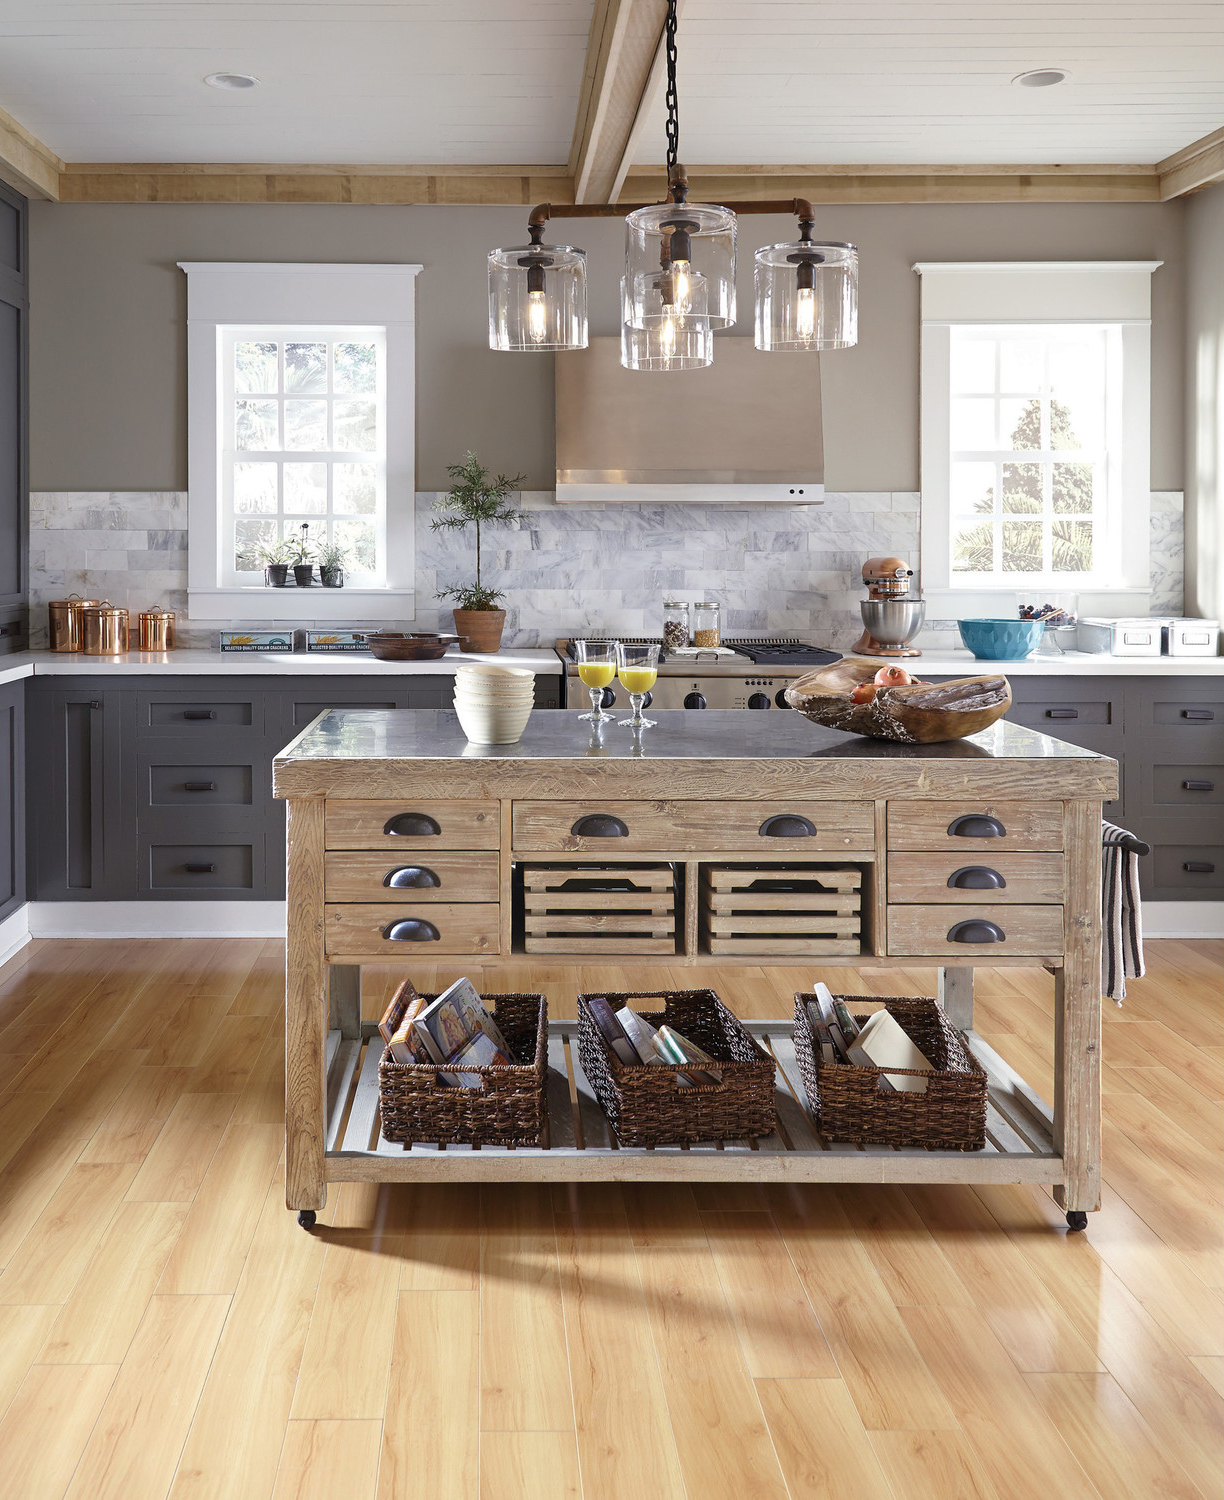 15 unique kitchen island design ideas style motivation for Unique kitchen island designs